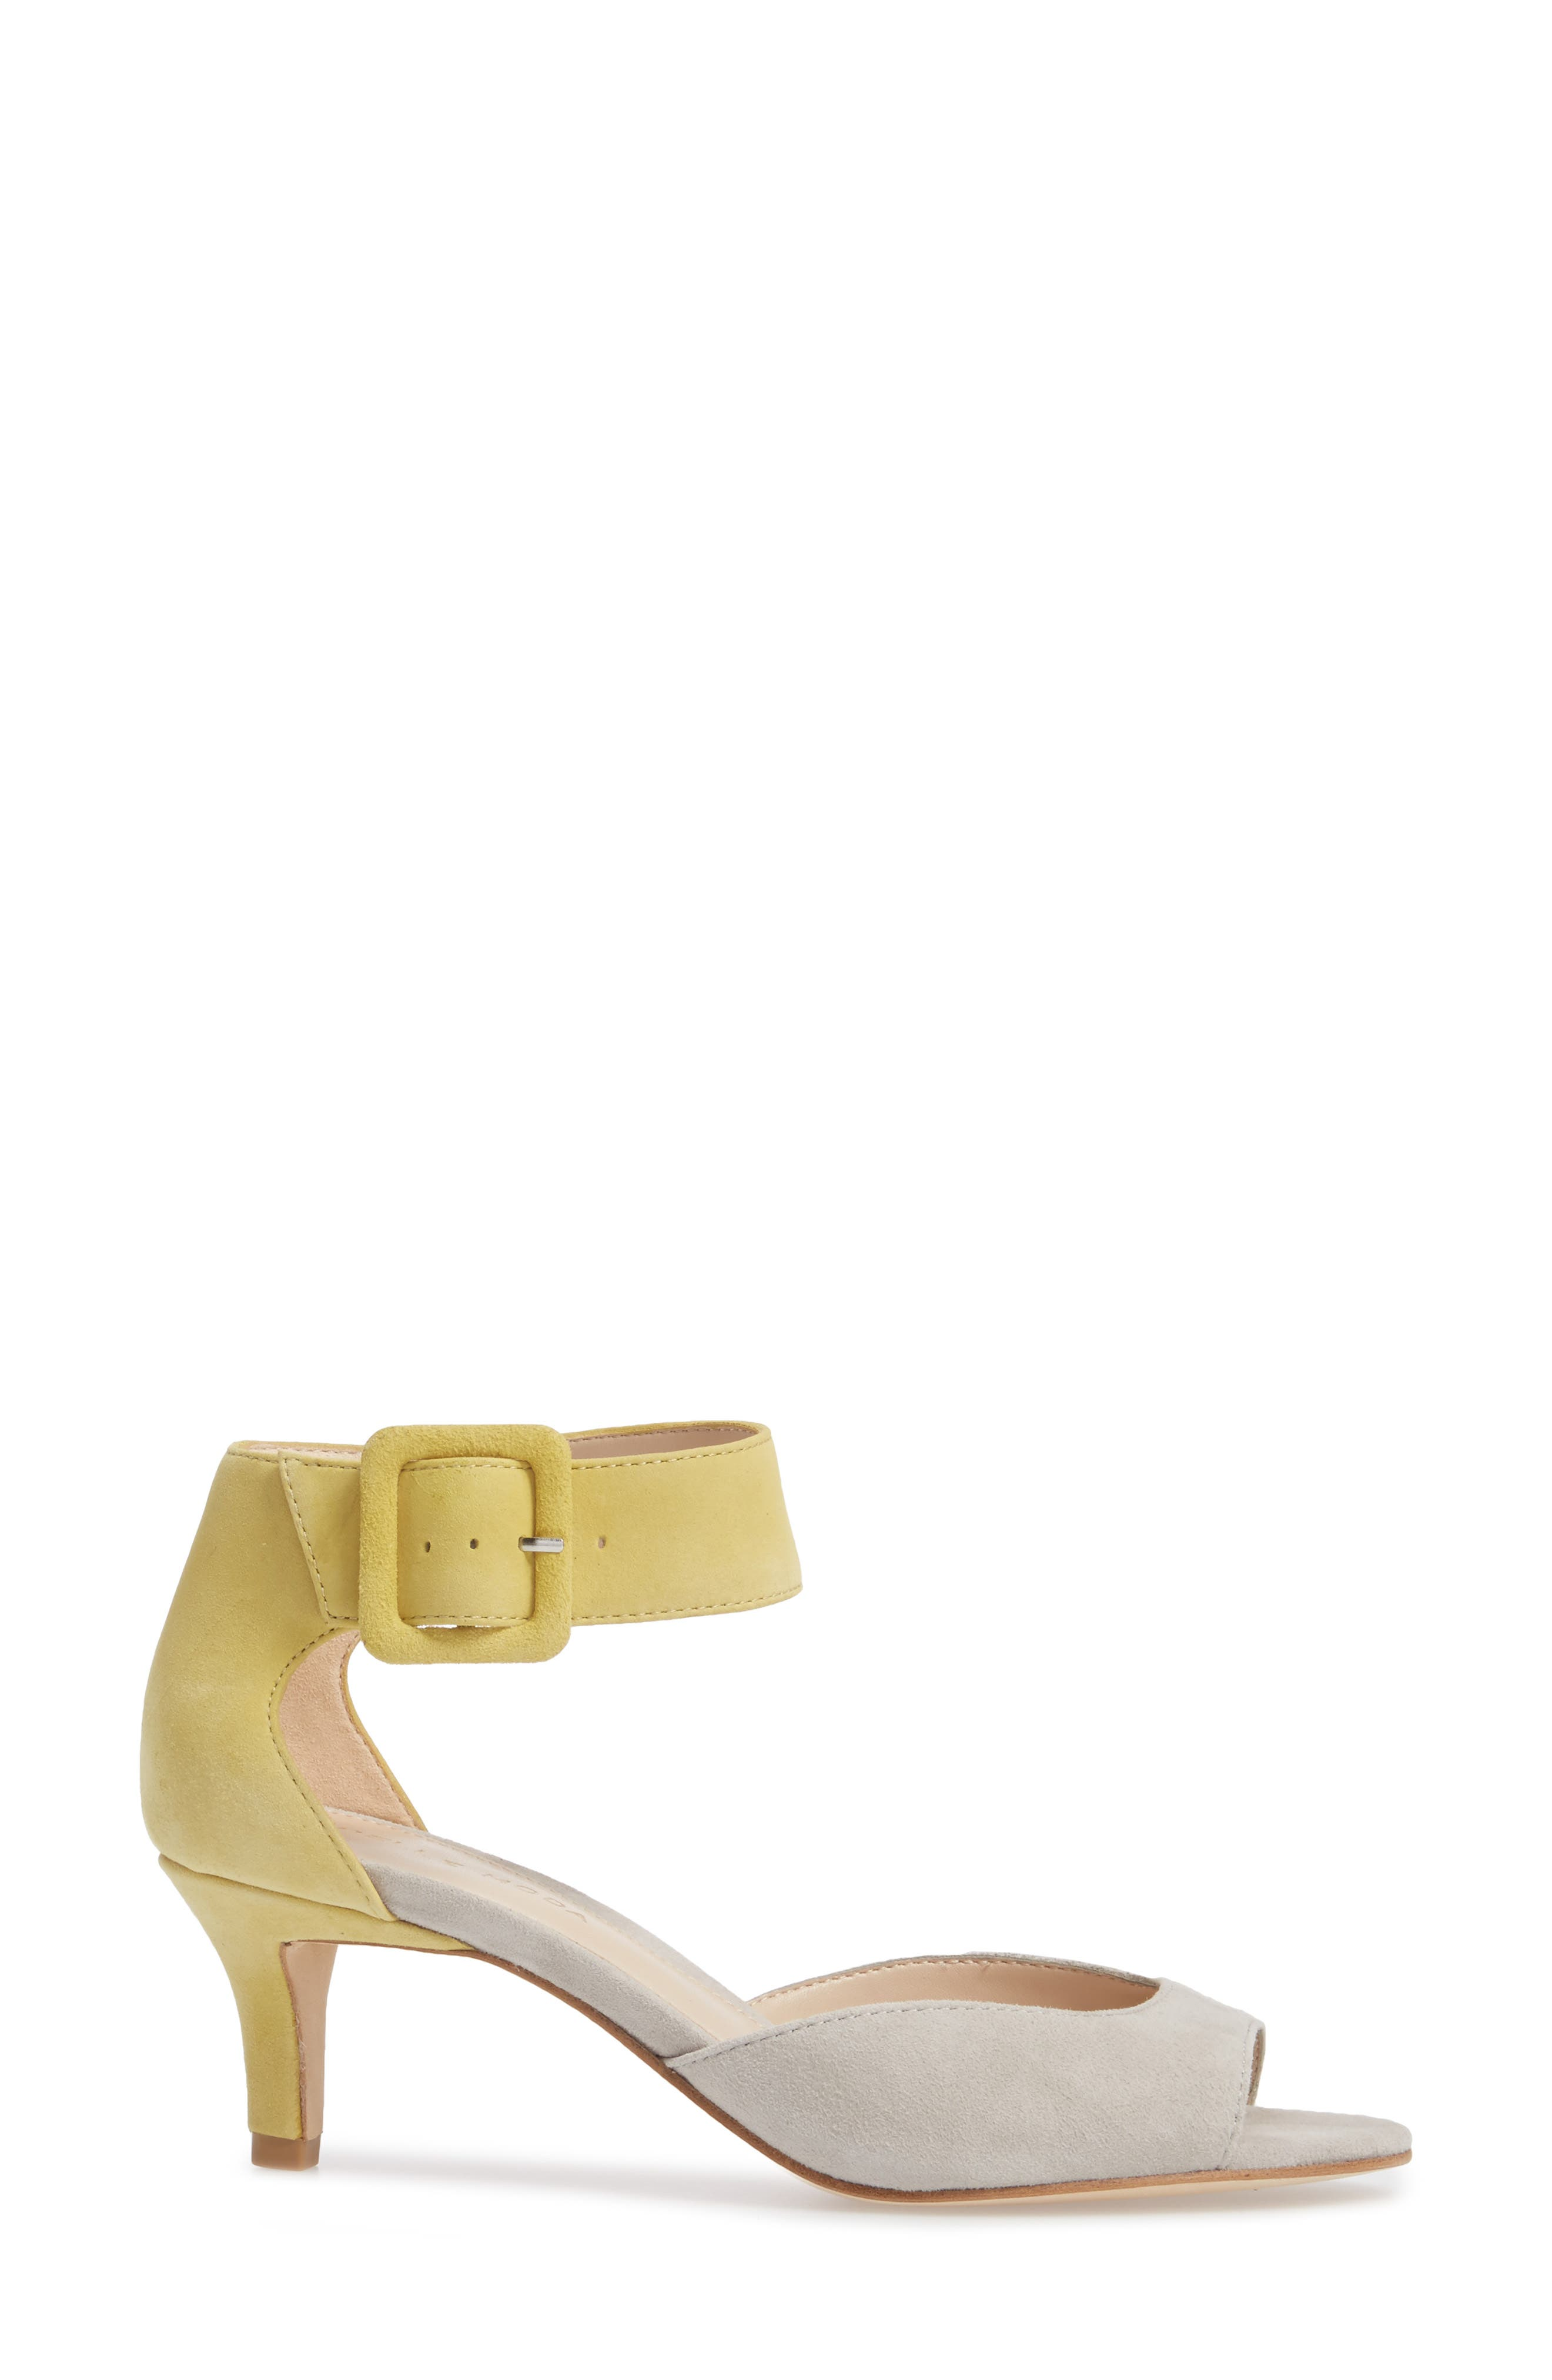 'Berlin' Ankle Strap Sandal,                             Alternate thumbnail 3, color,                             024